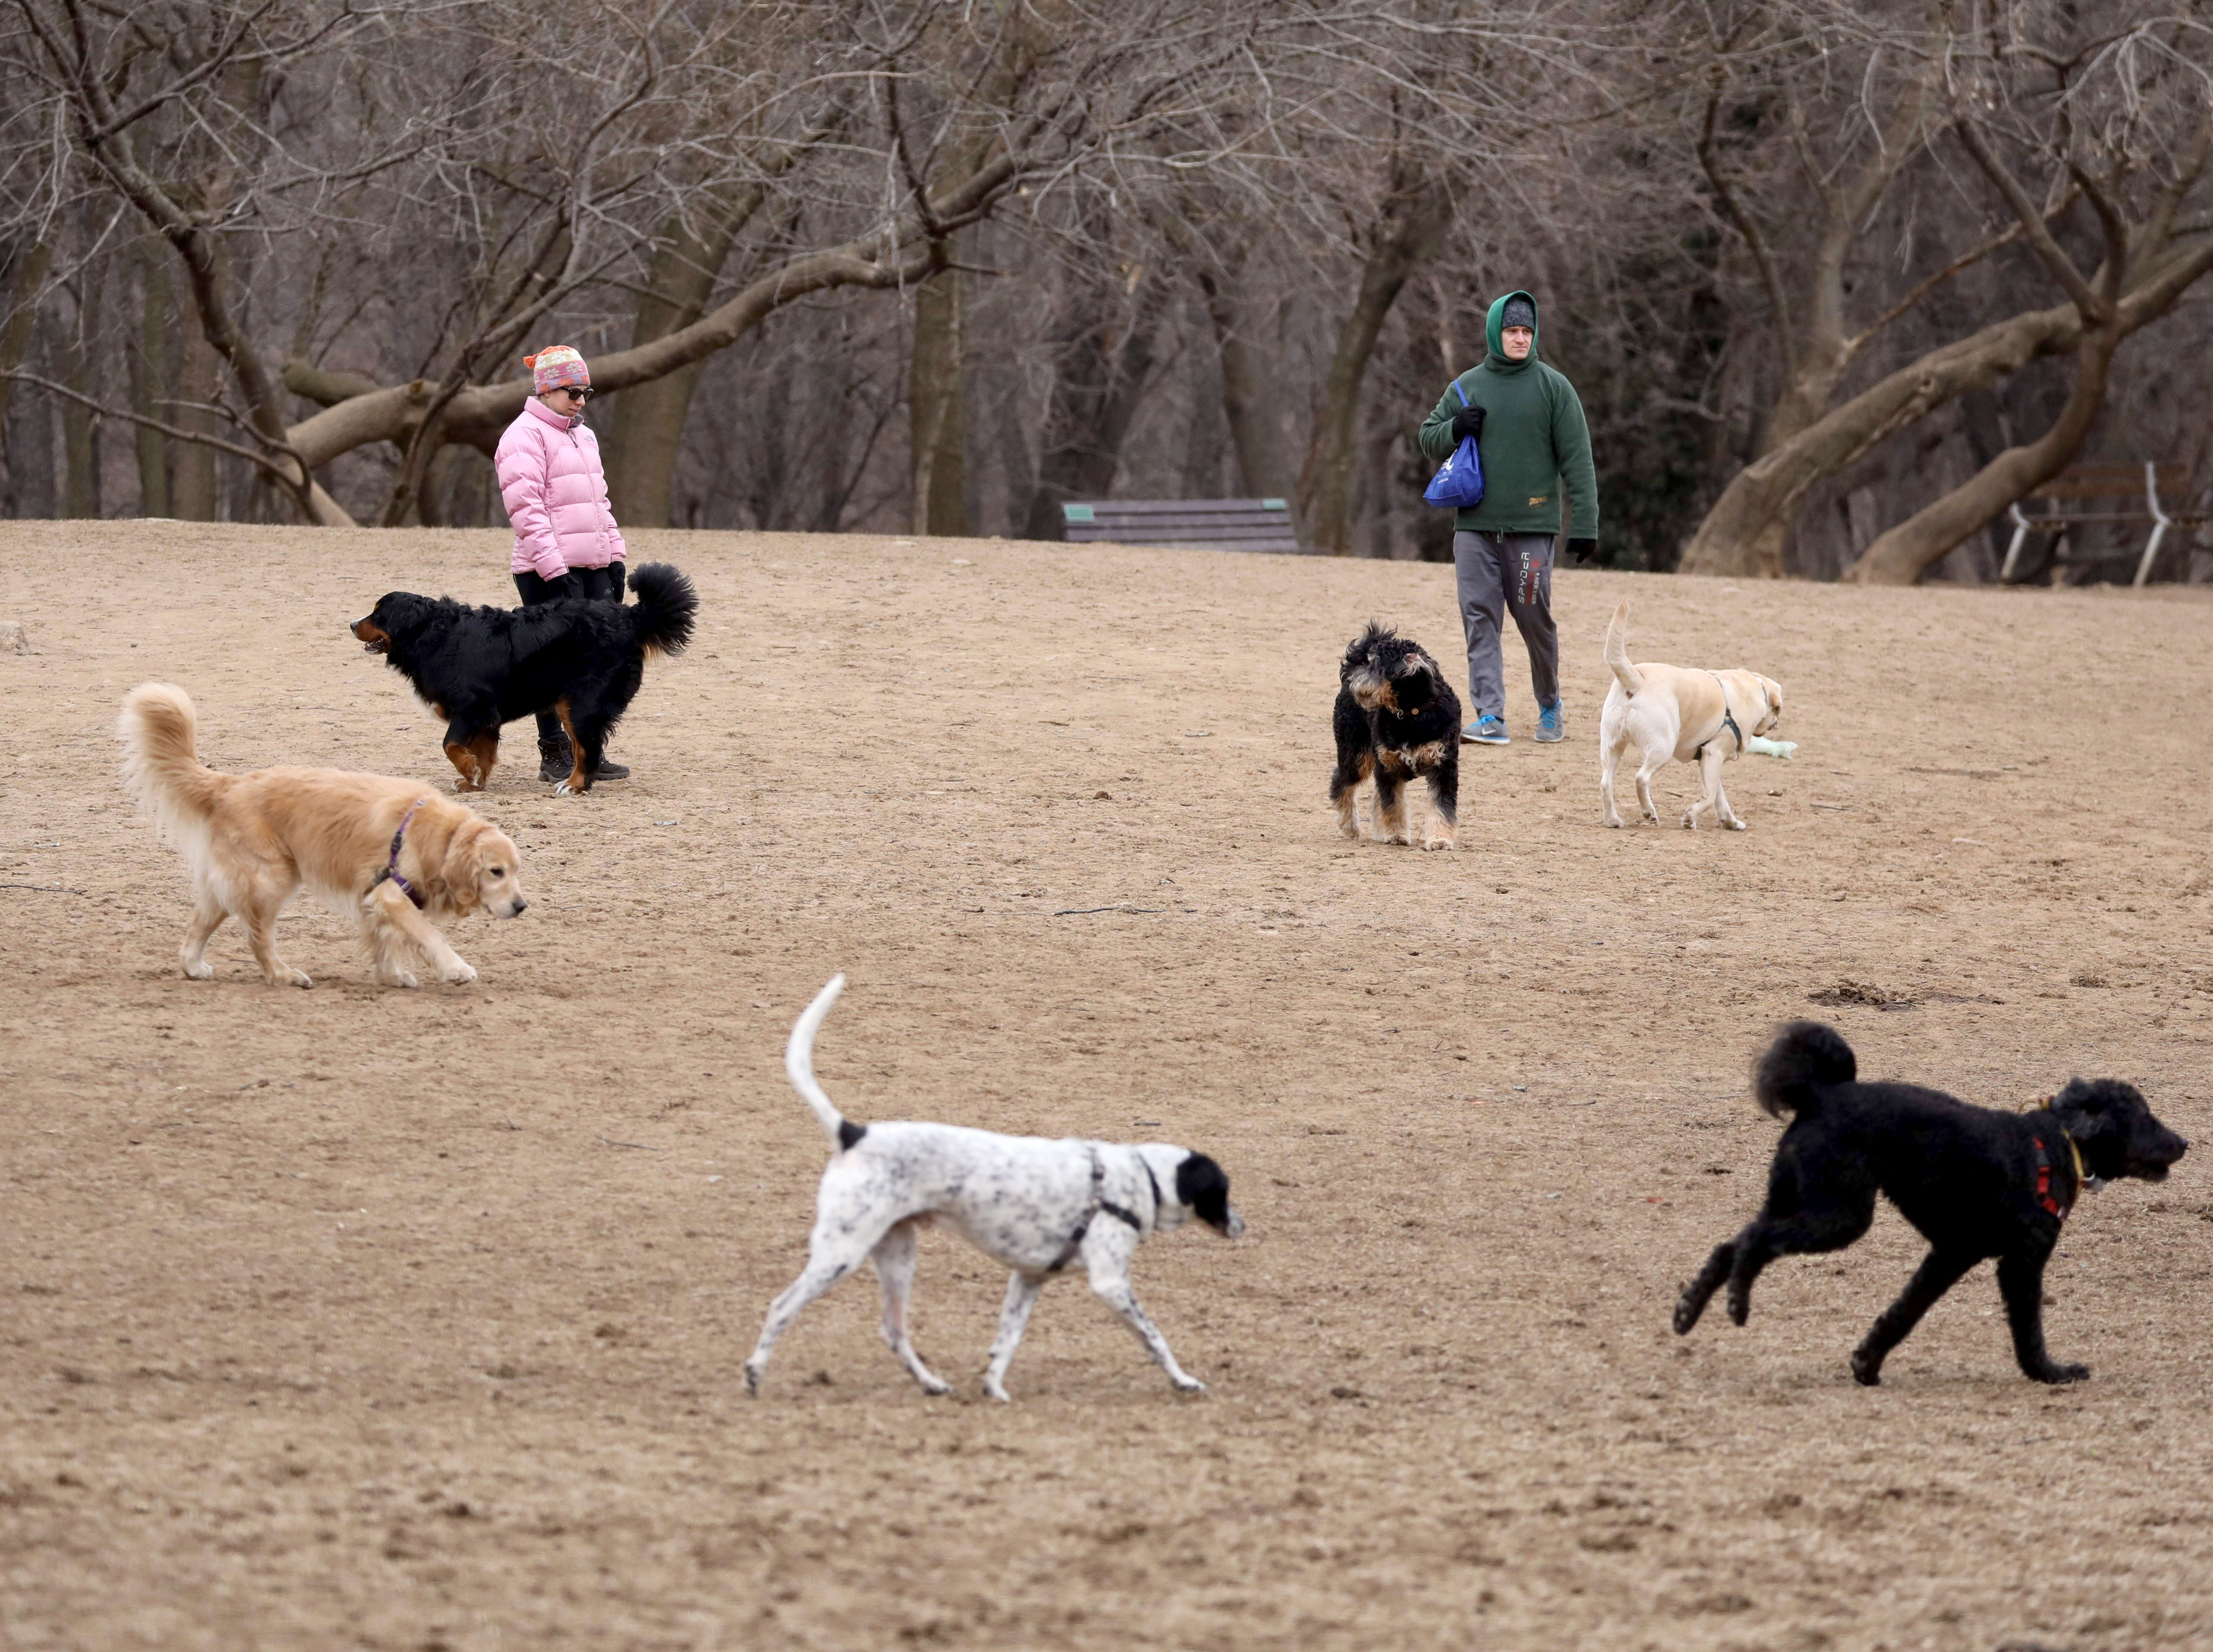 Dogs and owners enjoy the large Paws Place dog park at Ward Acres Park in New Rochelle, Feb. 27, 2019.